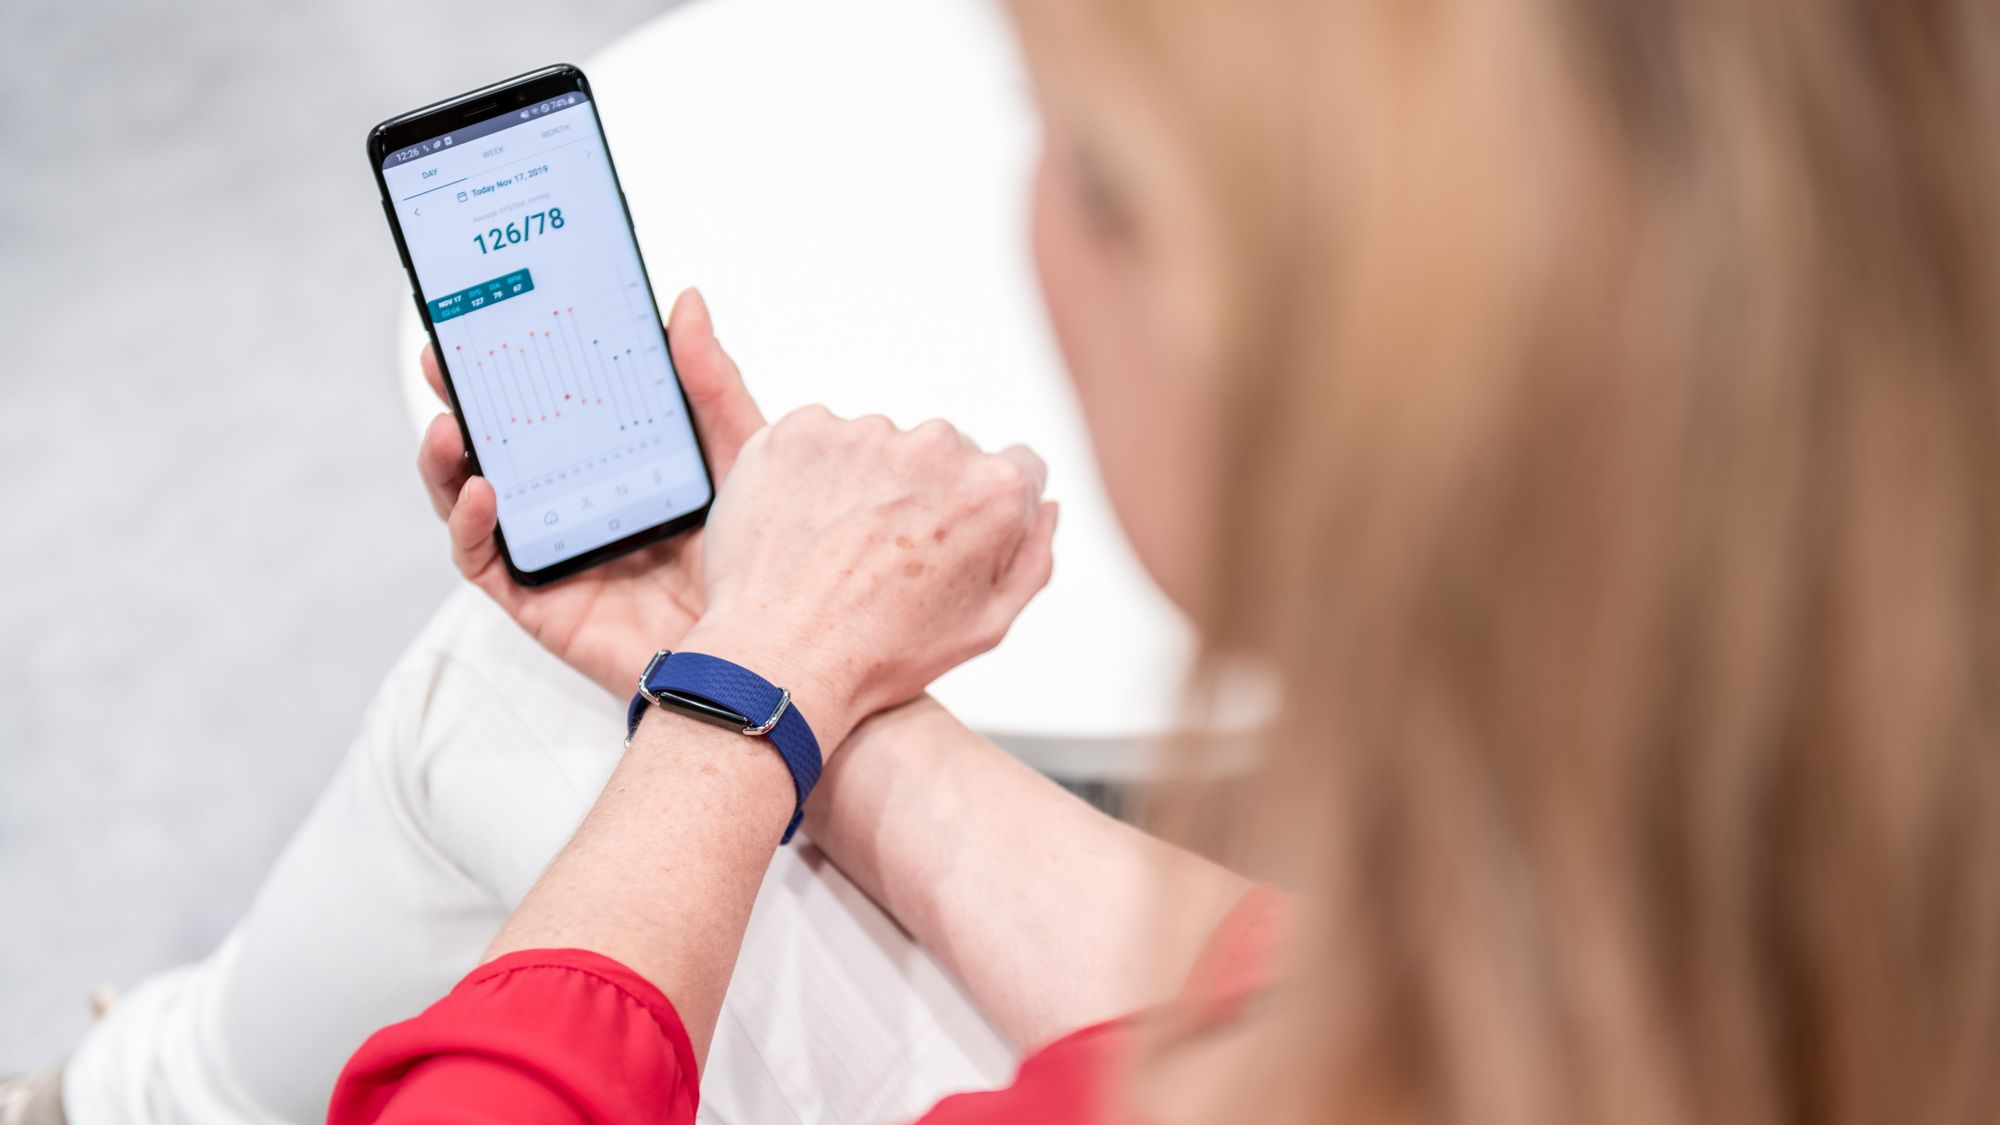 The future of staying healthy is sitting on your wrist